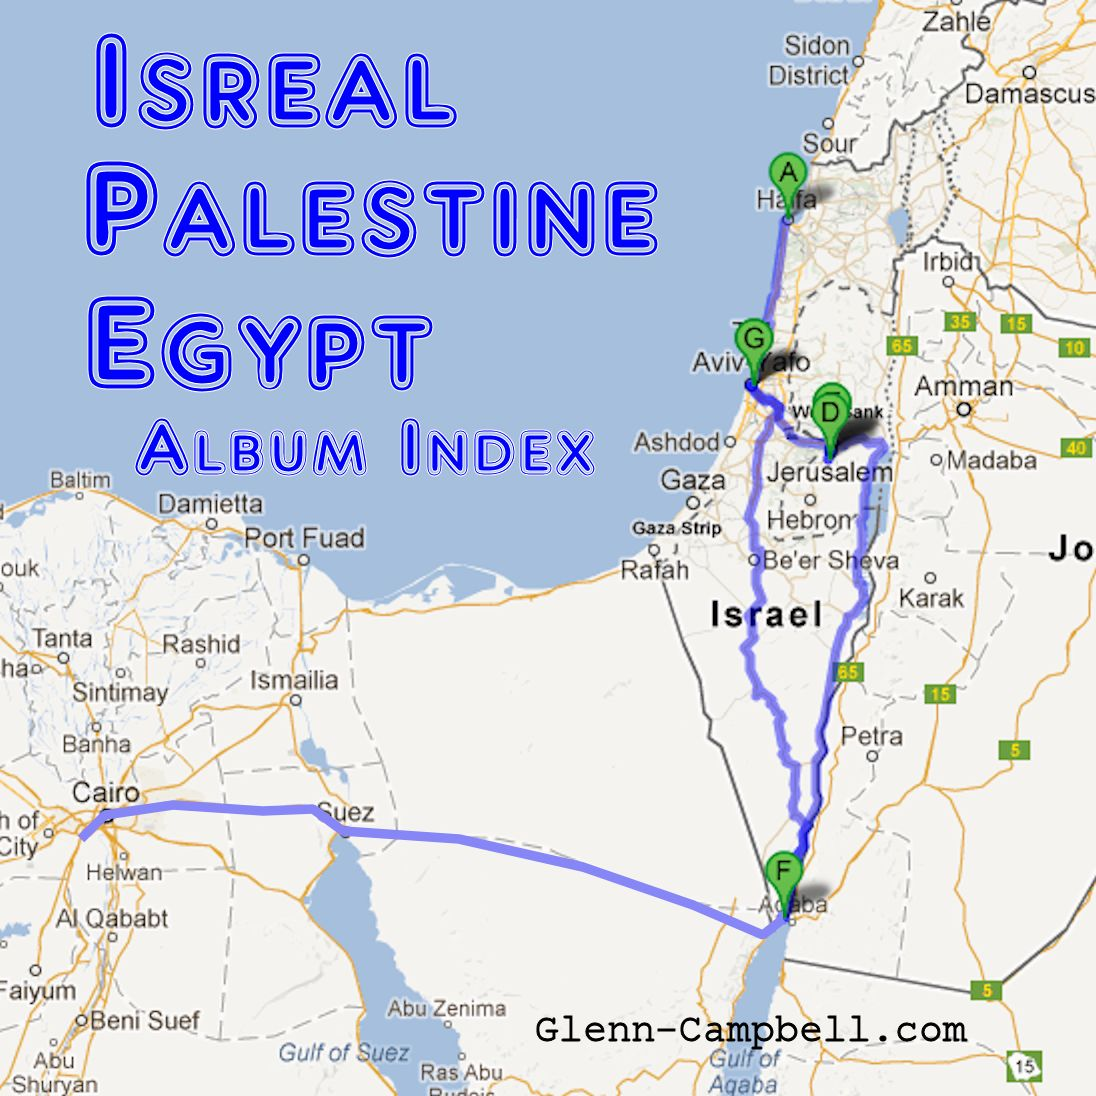 Middle East Album Index - Photo Album by Glenn Campbell